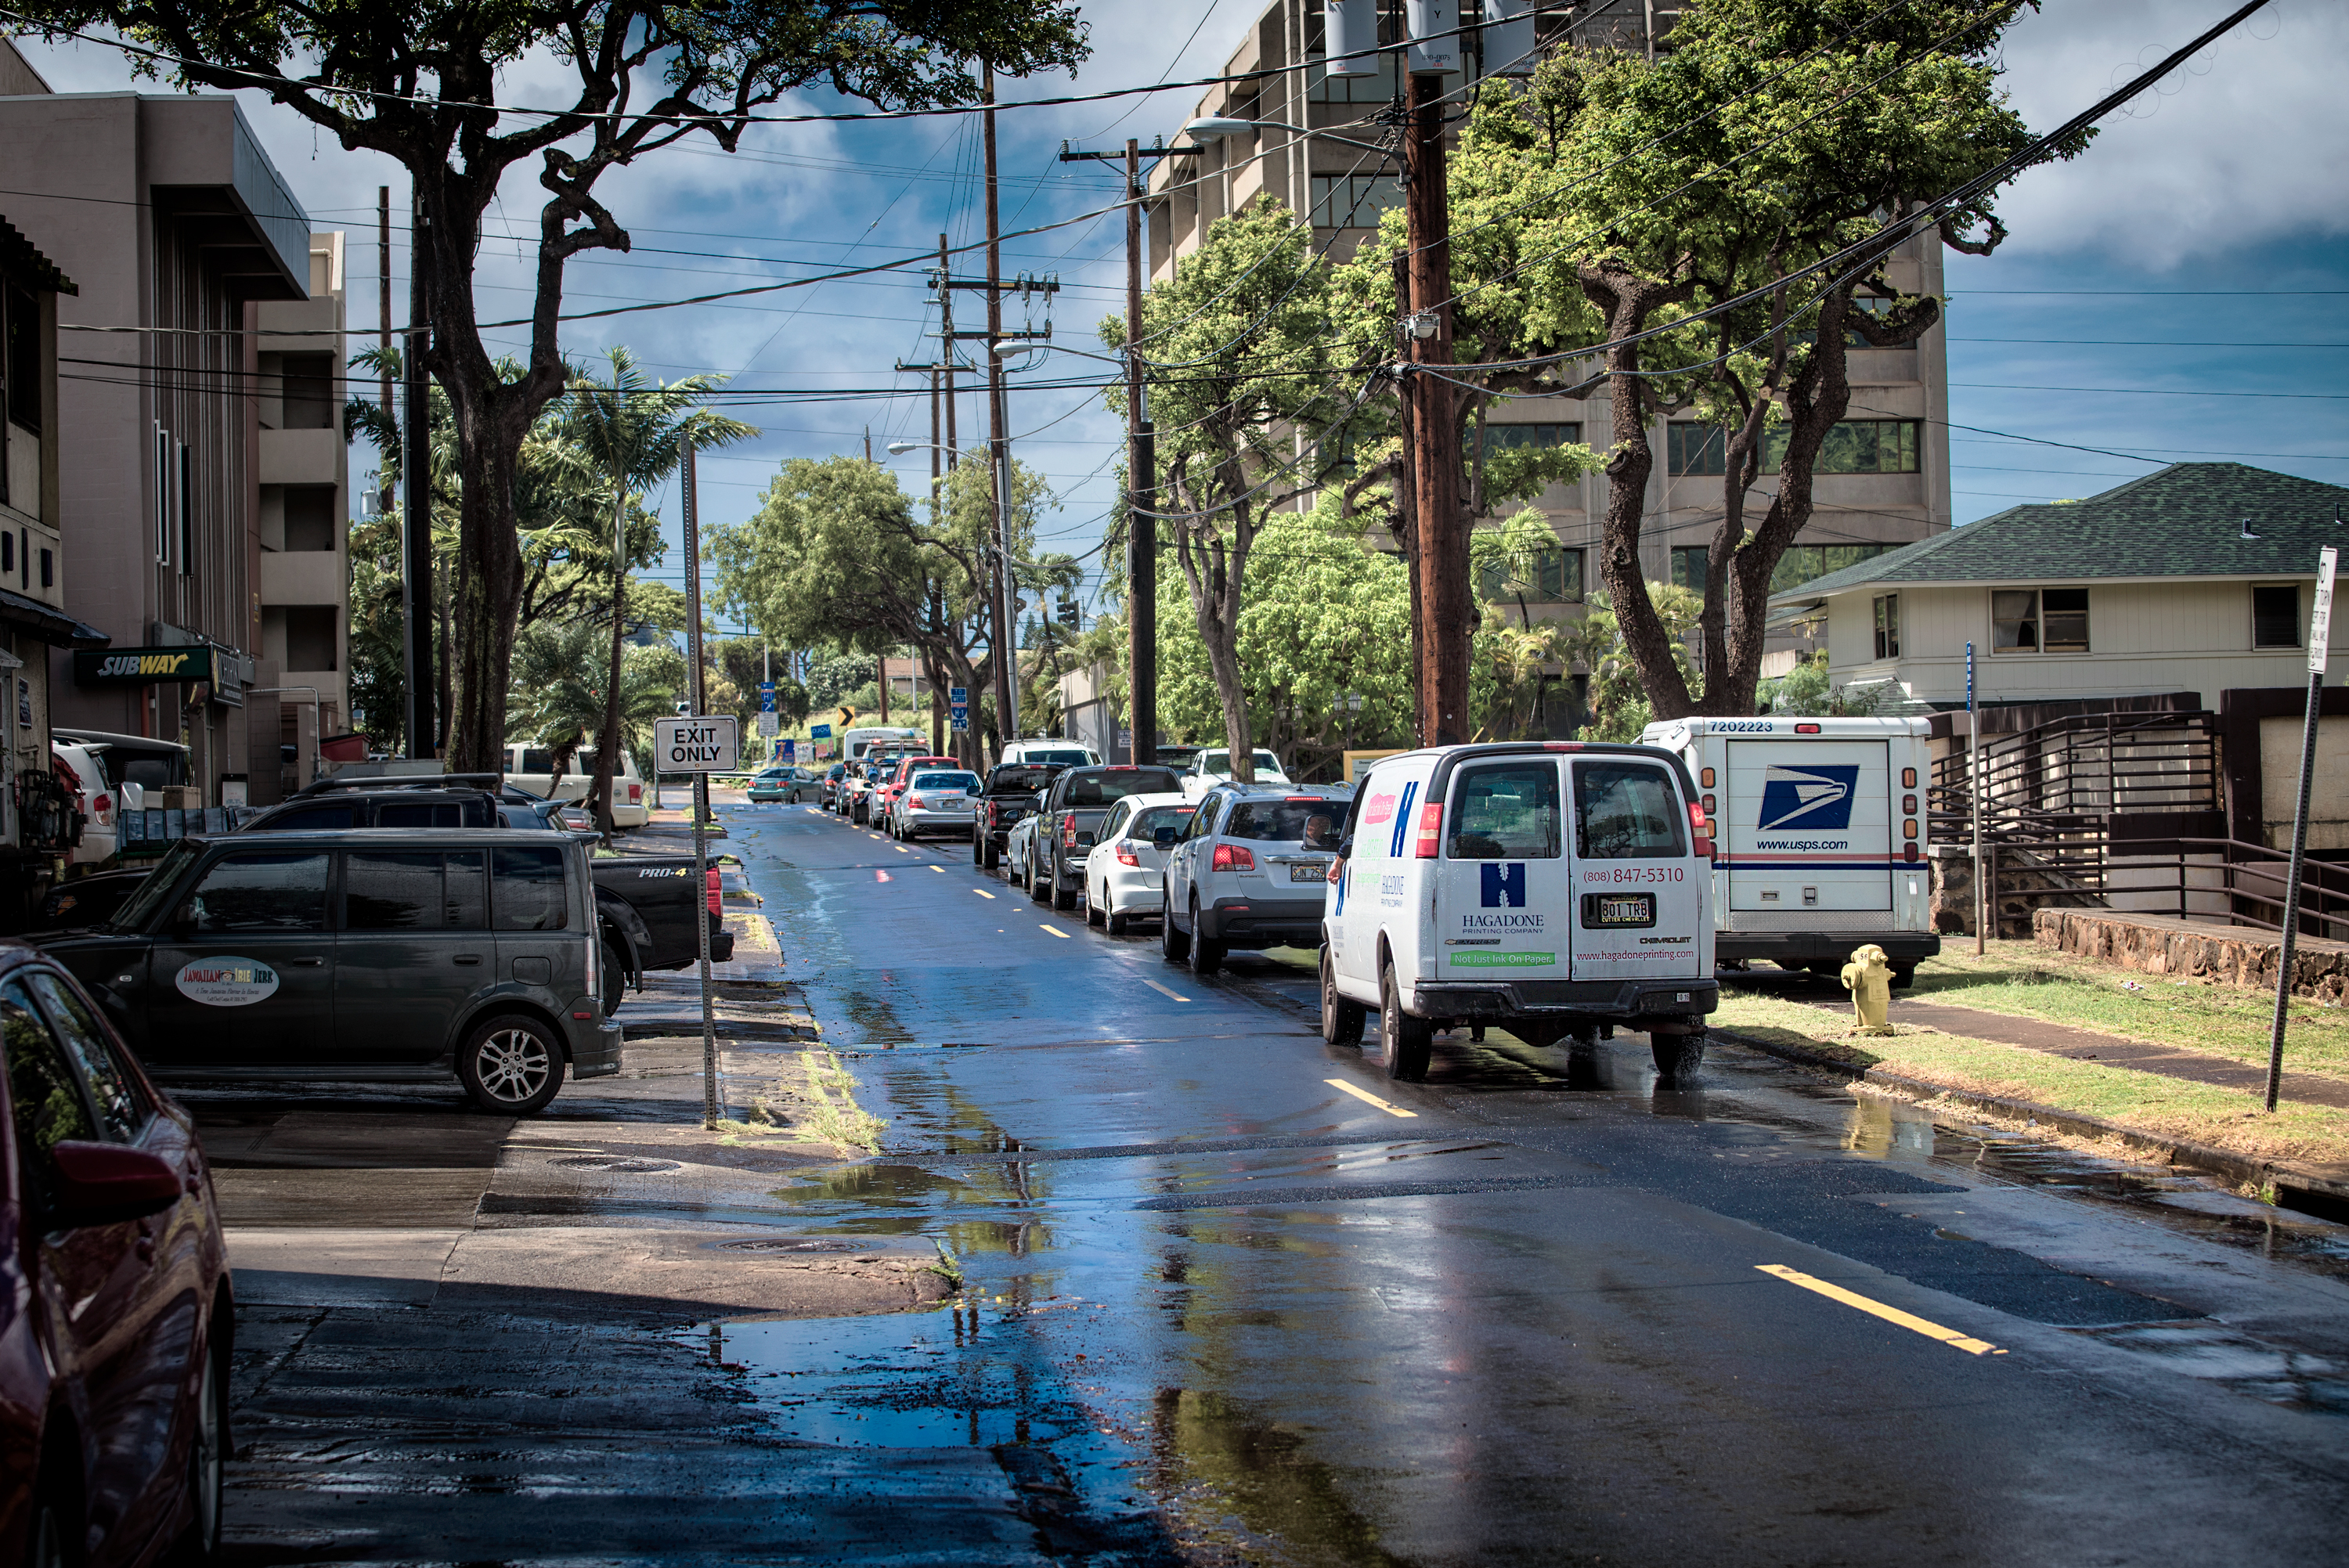 After Shower 11th Ave. Kaimuki